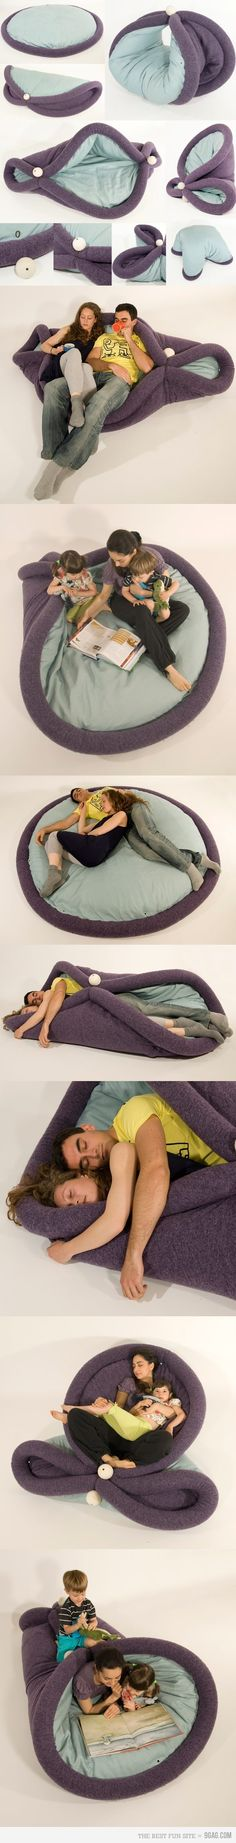 Weird but I want it!